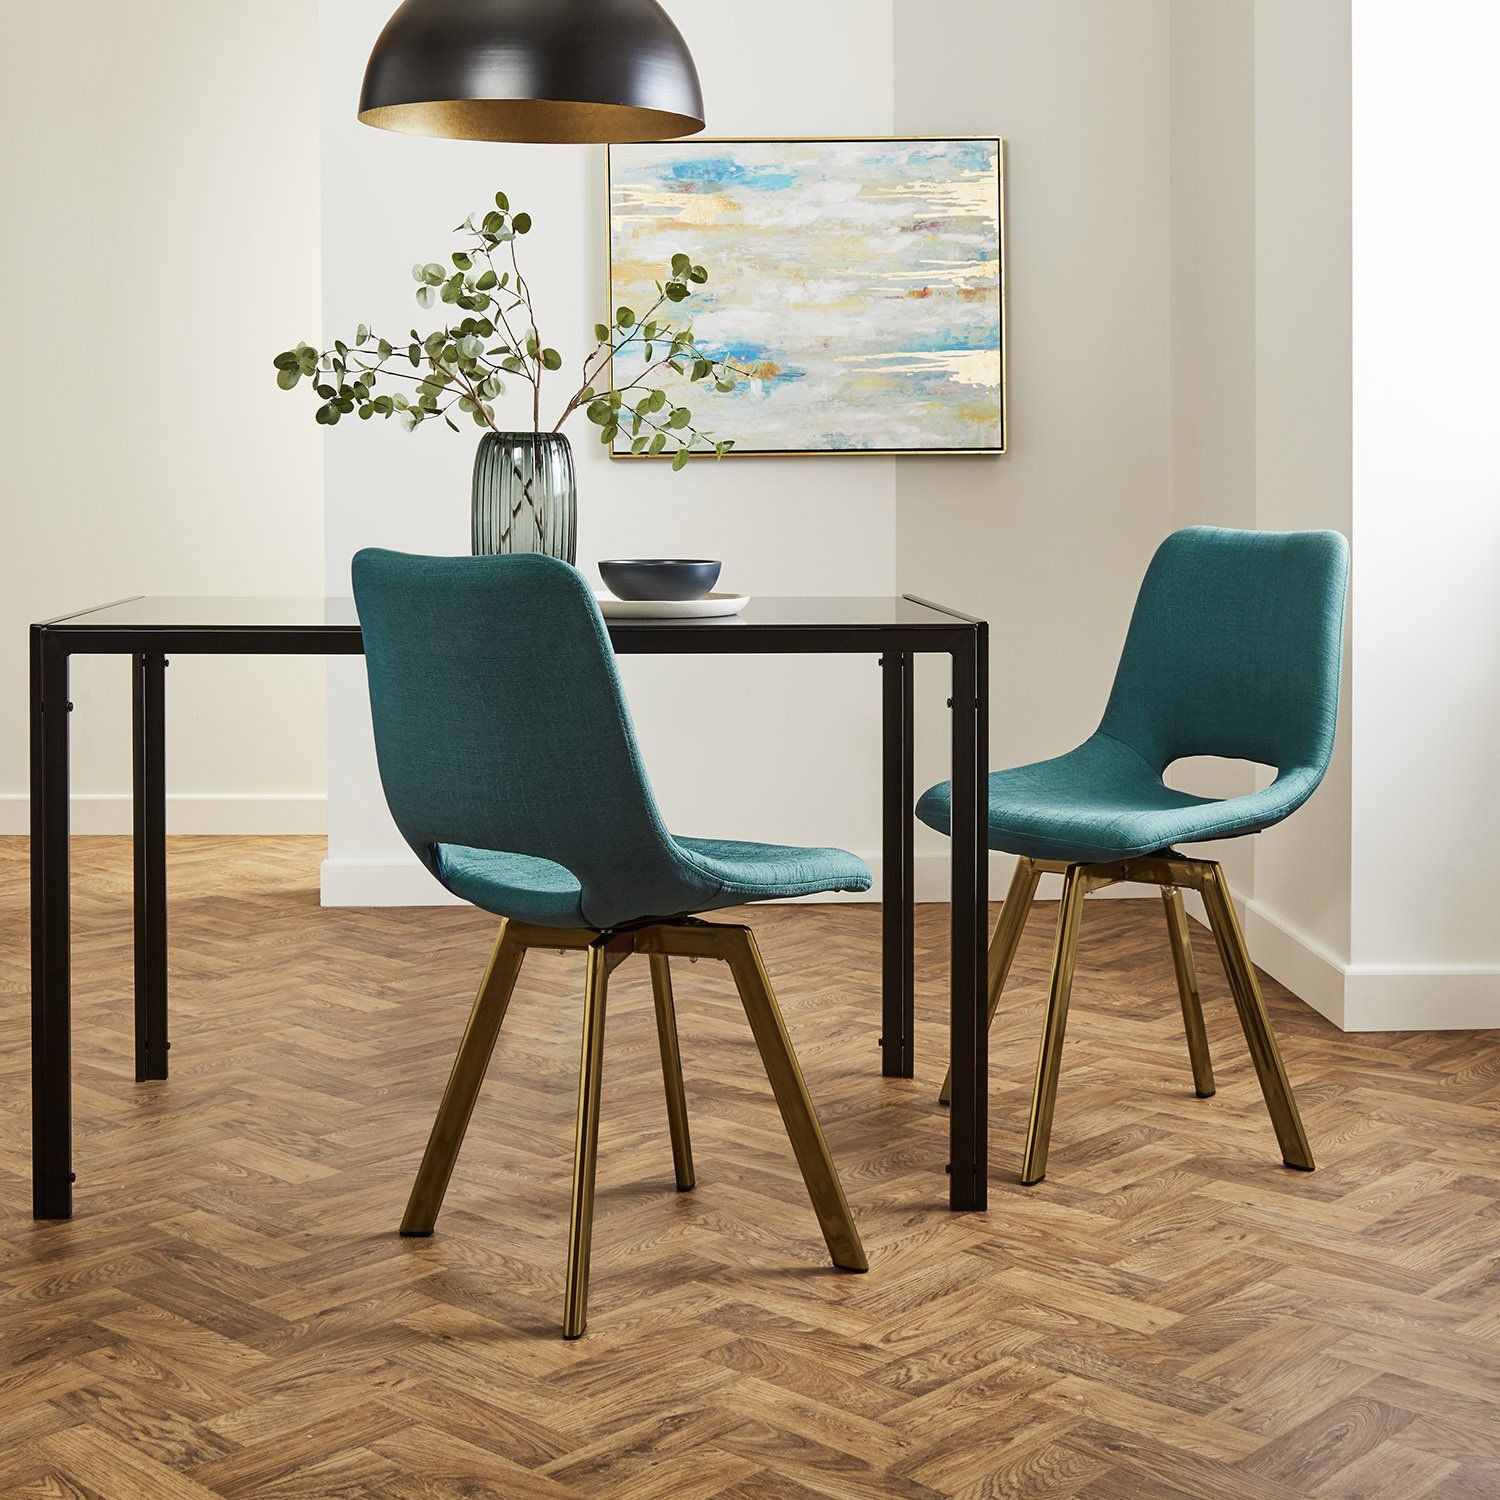 Margot dining chairs x2 - teal and brass- Laura James